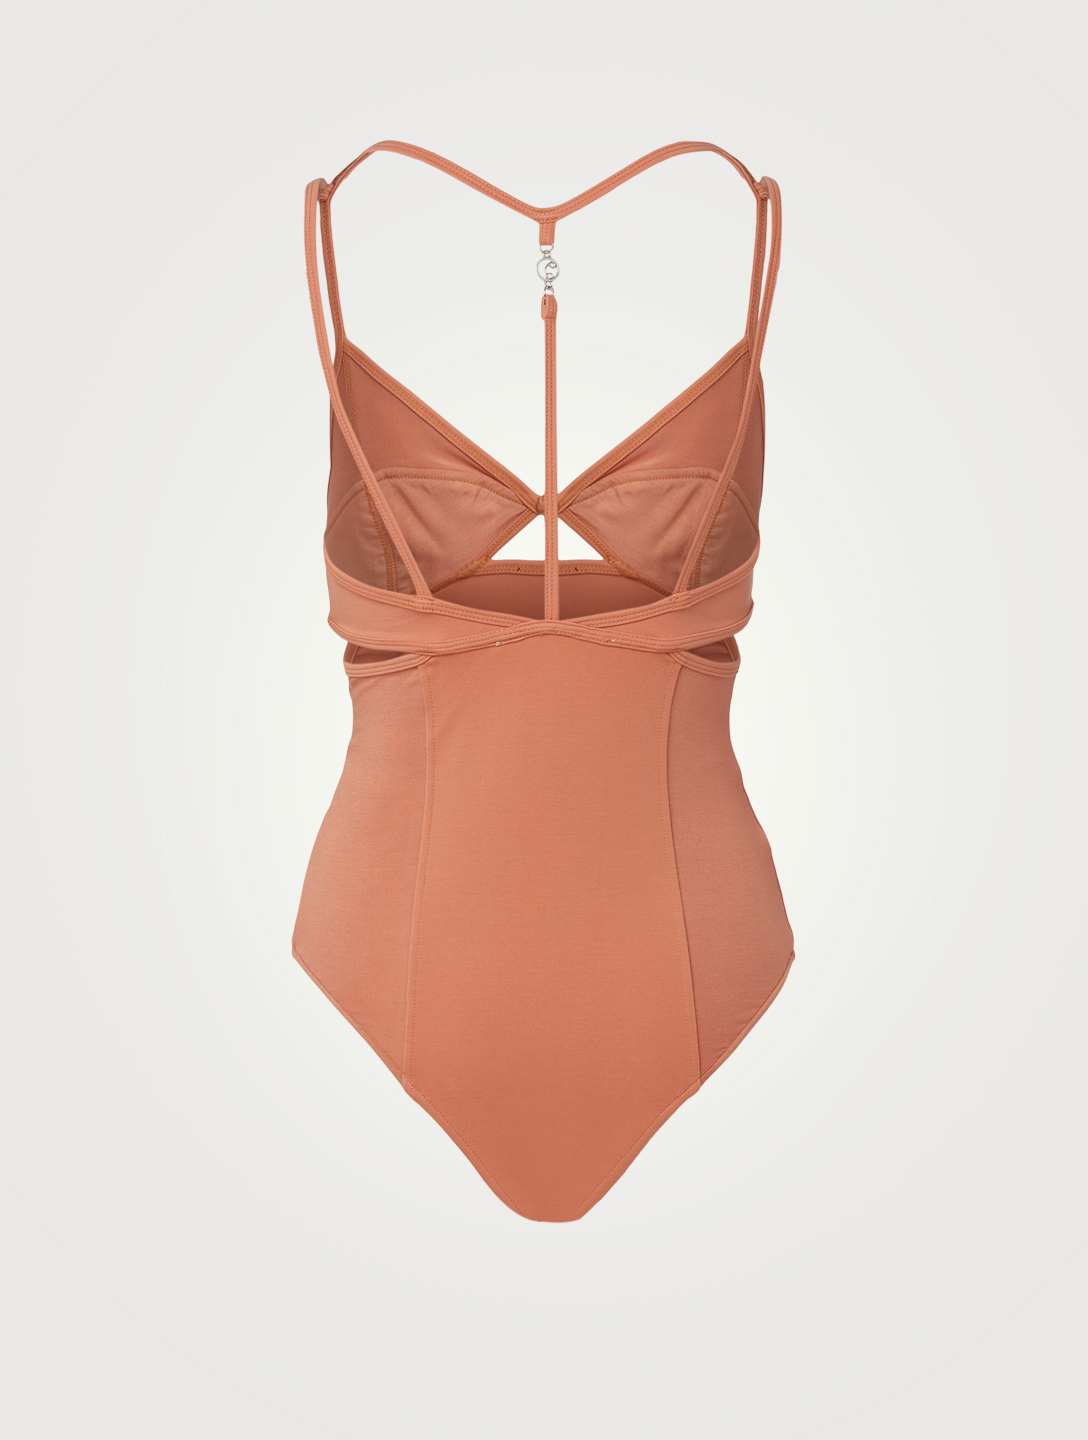 REMAIN BIRGER CHRISTENSEN Maillot en jersey extensible Cilla Femmes Marron